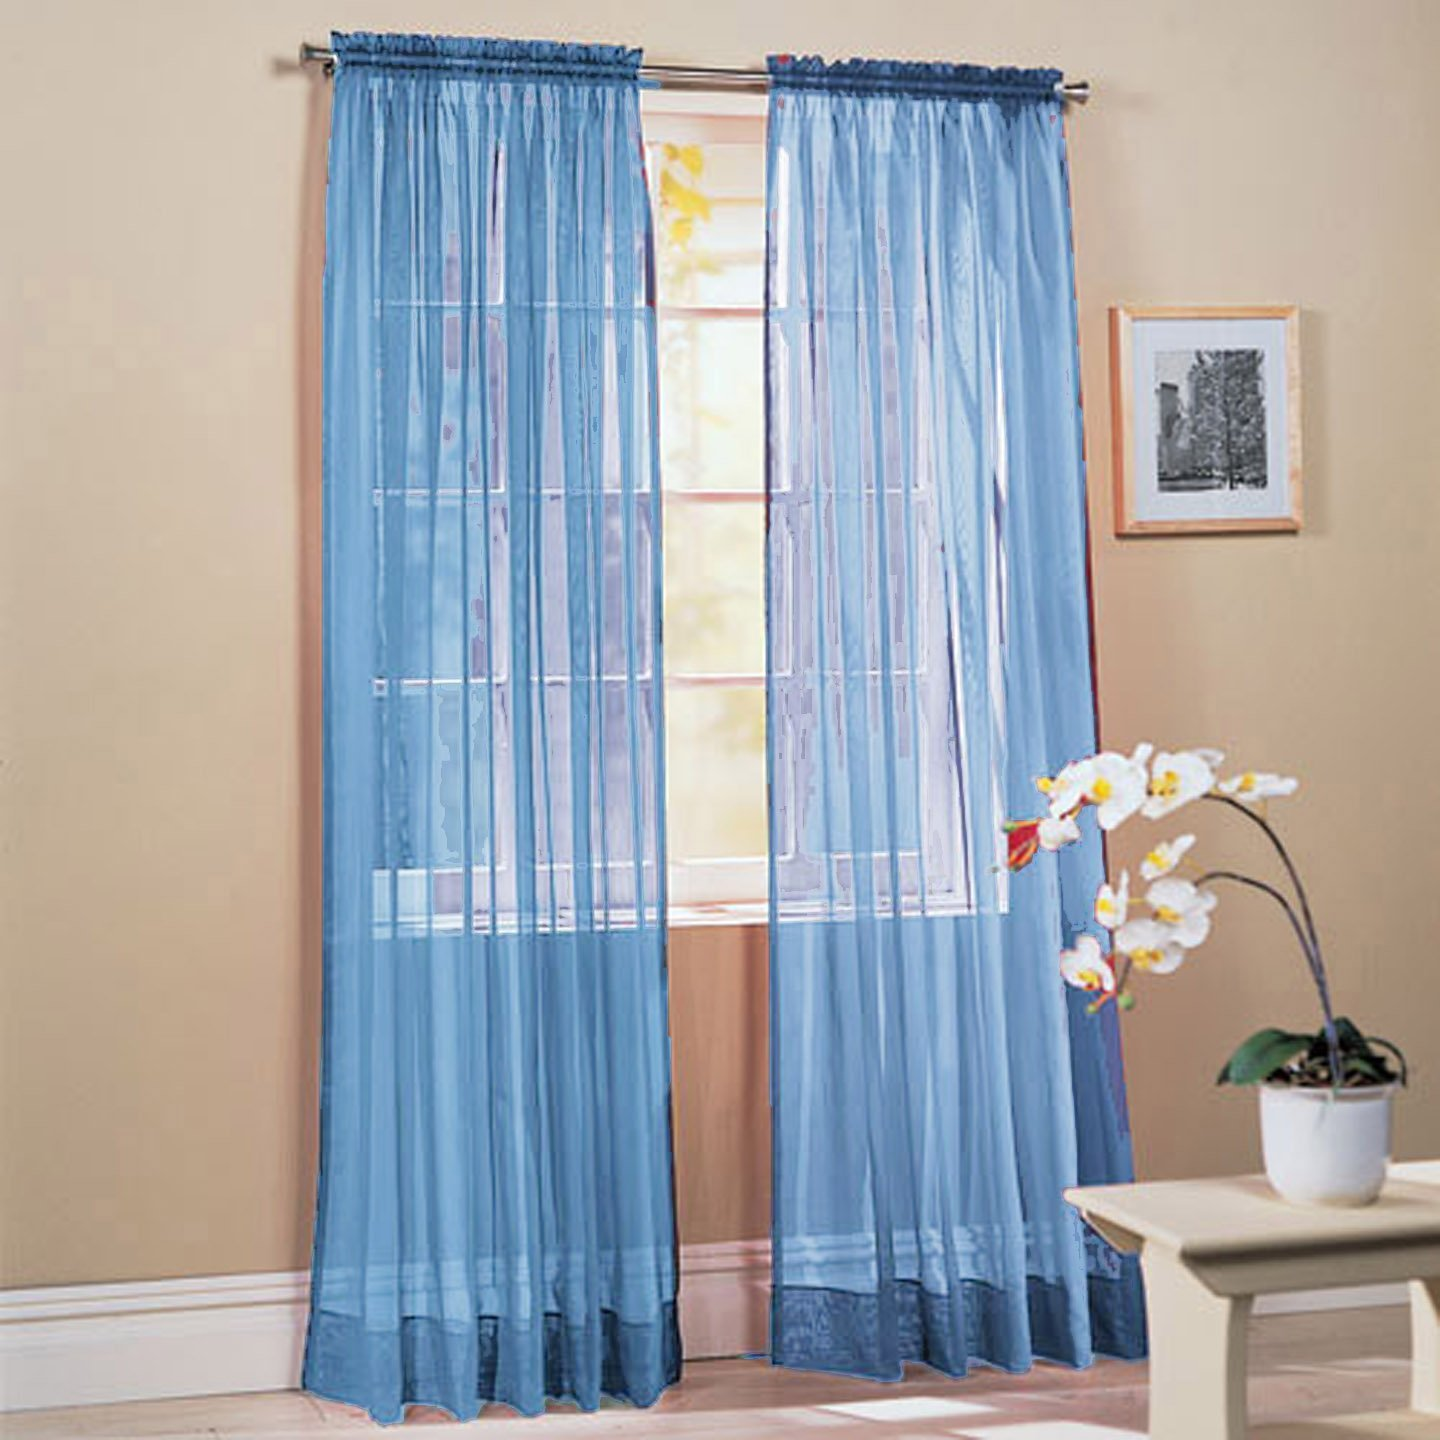 Amazon 2 Piece Solid Sky Blue Sheer Window Curtains drape